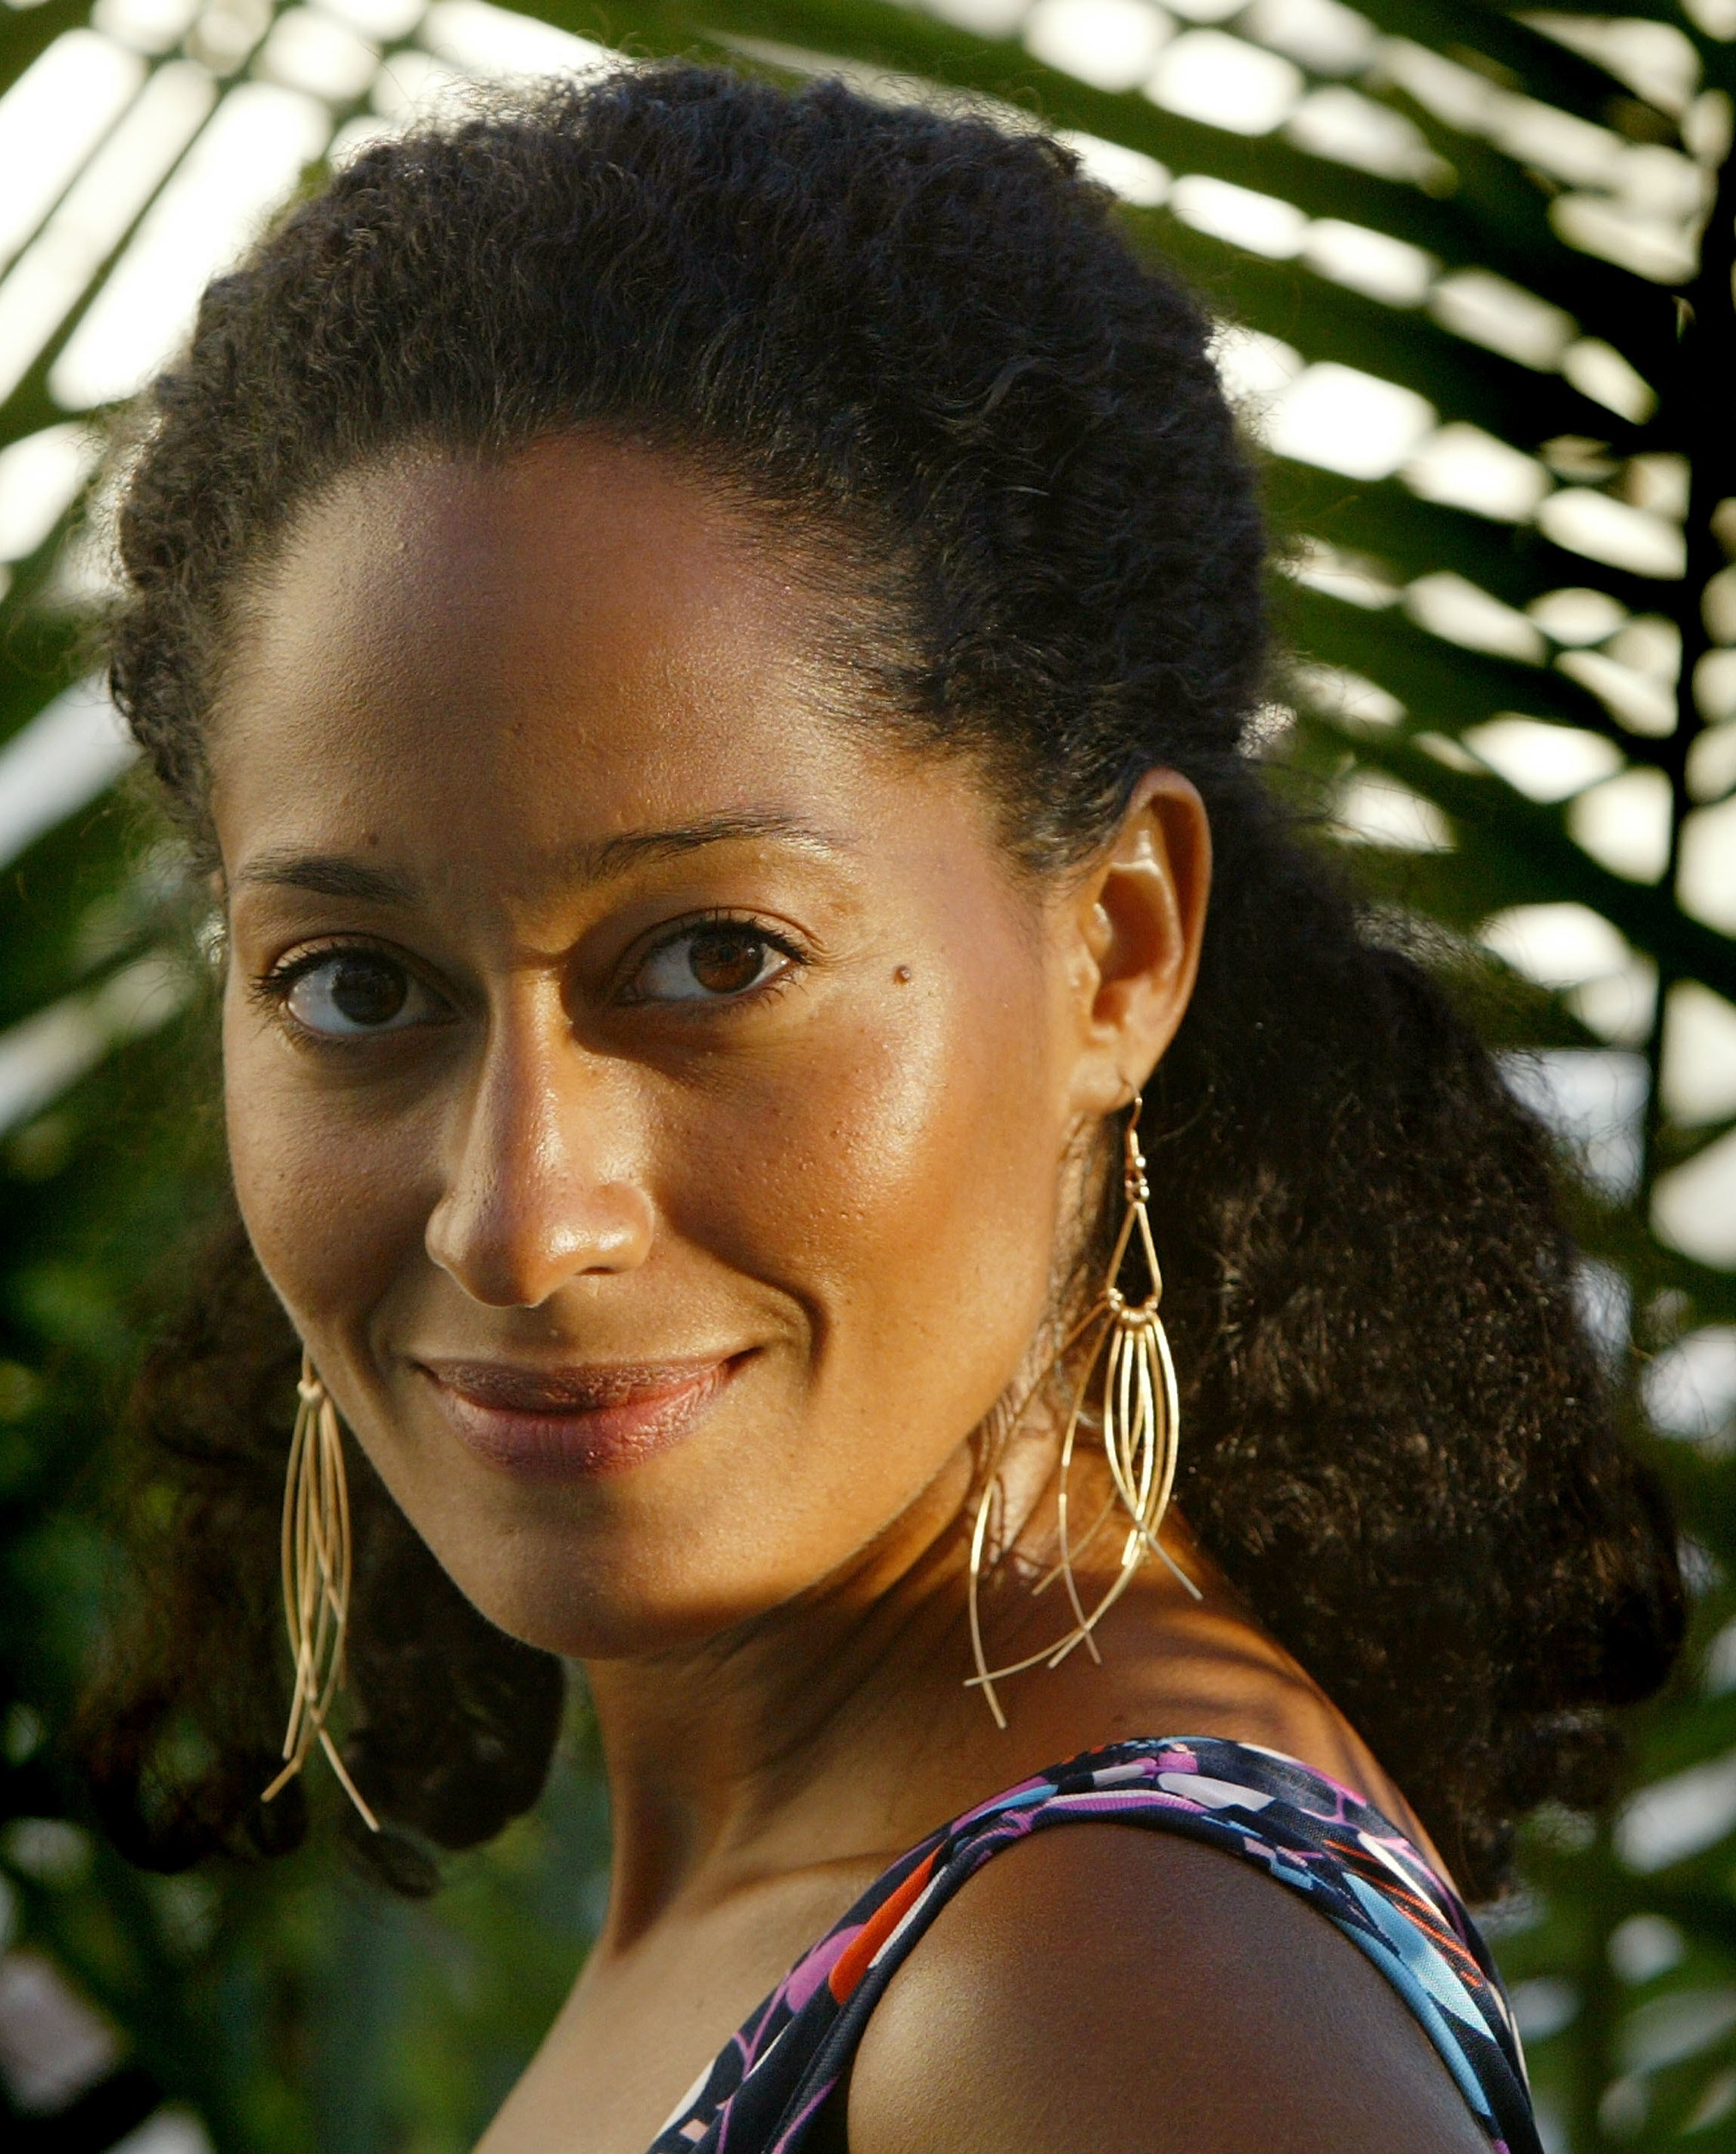 Tracee Ellis Ross with her natural hair half-up, half-down, smiling